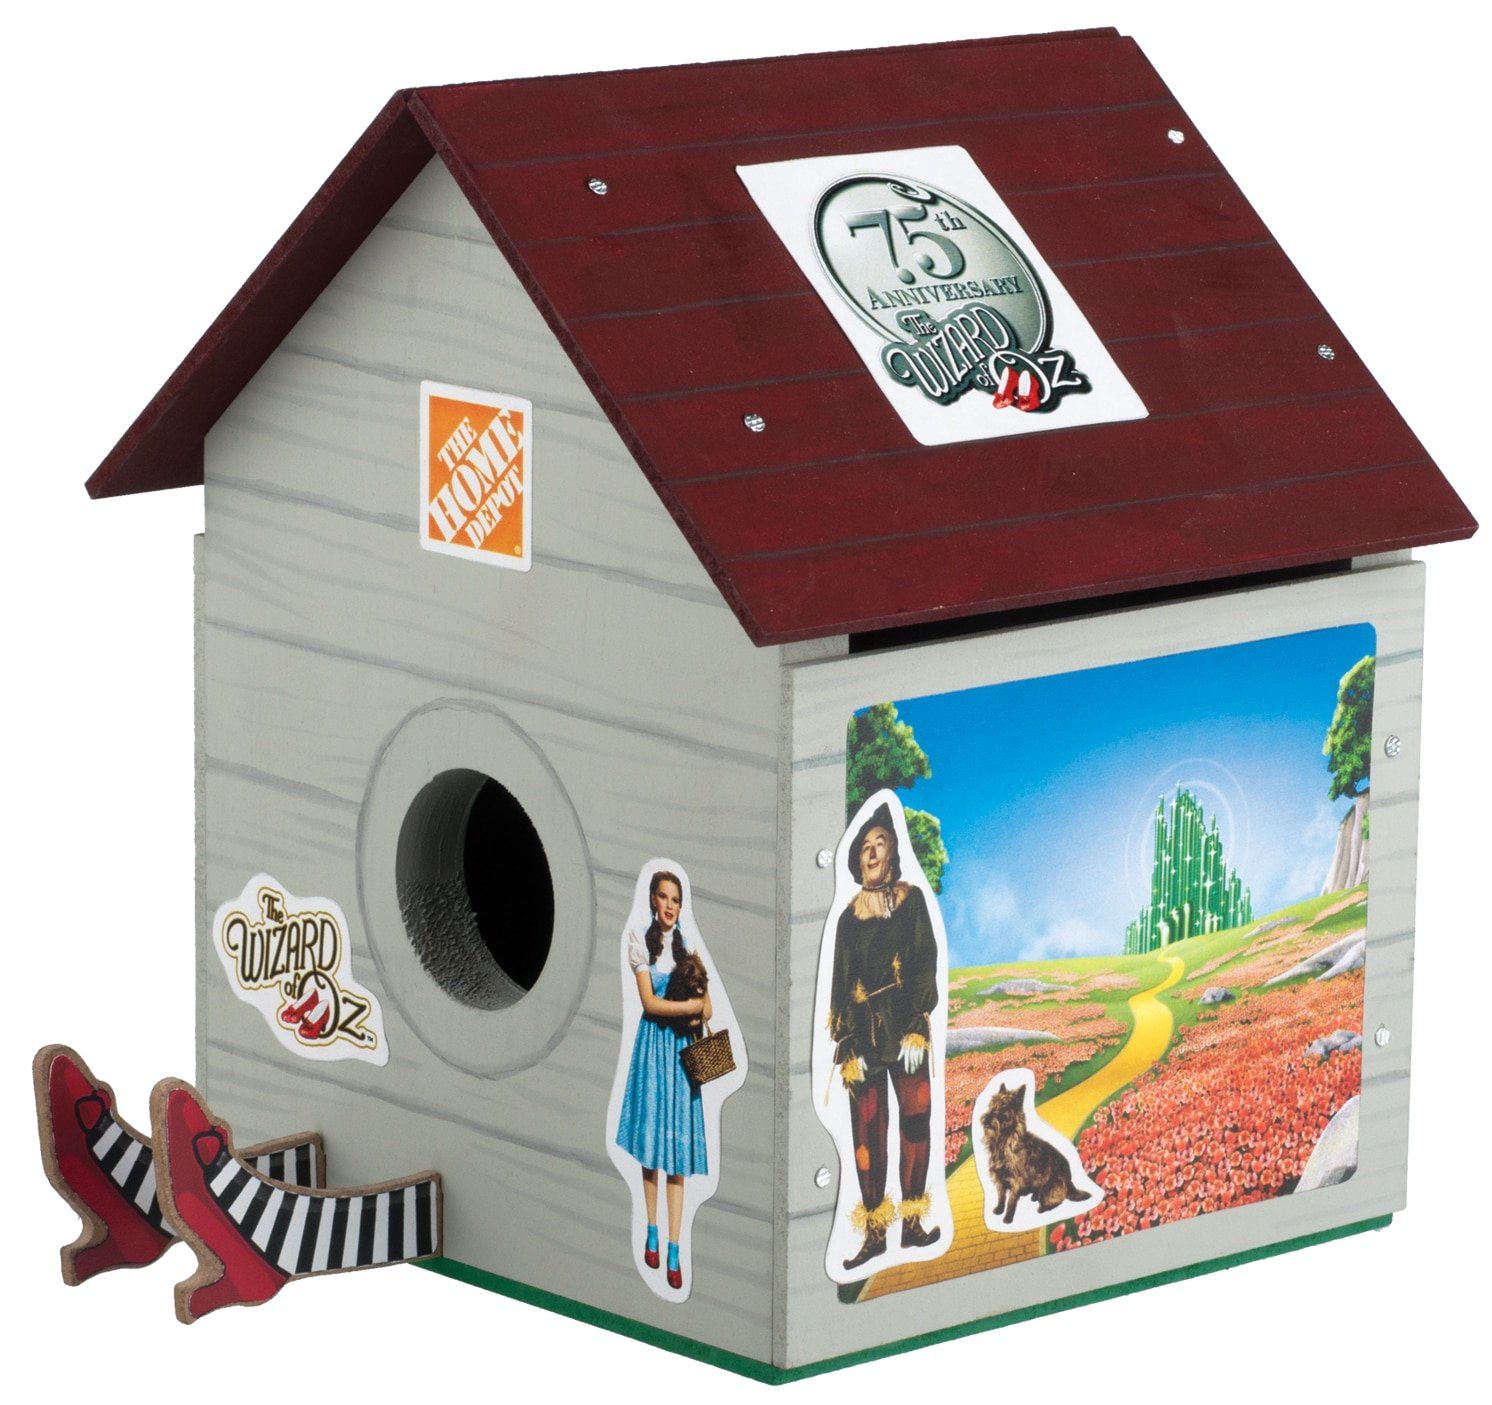 Free Build a Wizard of Oz TM Birdhouse